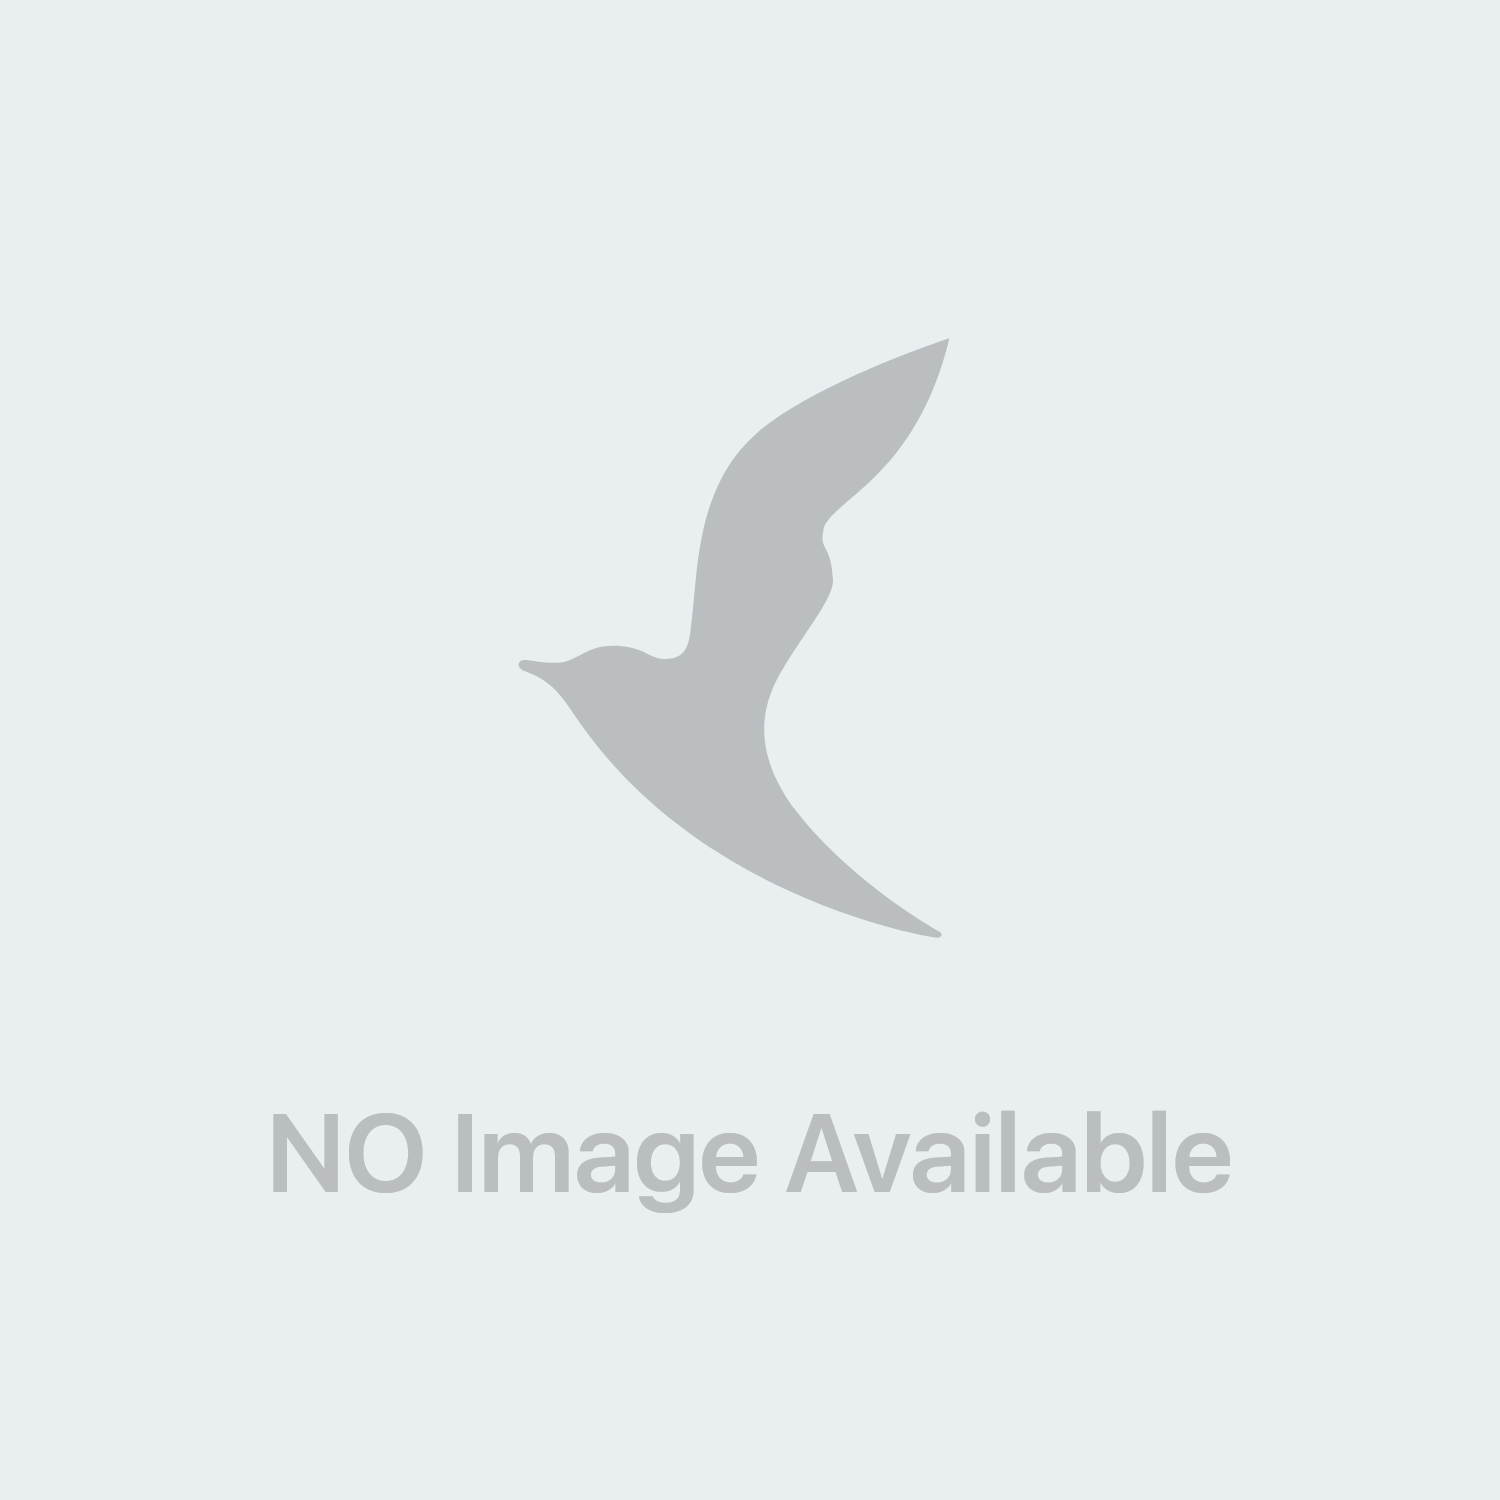 Ensure Plus Cioccolato Integratore Ipercalorico 4x200 Ml